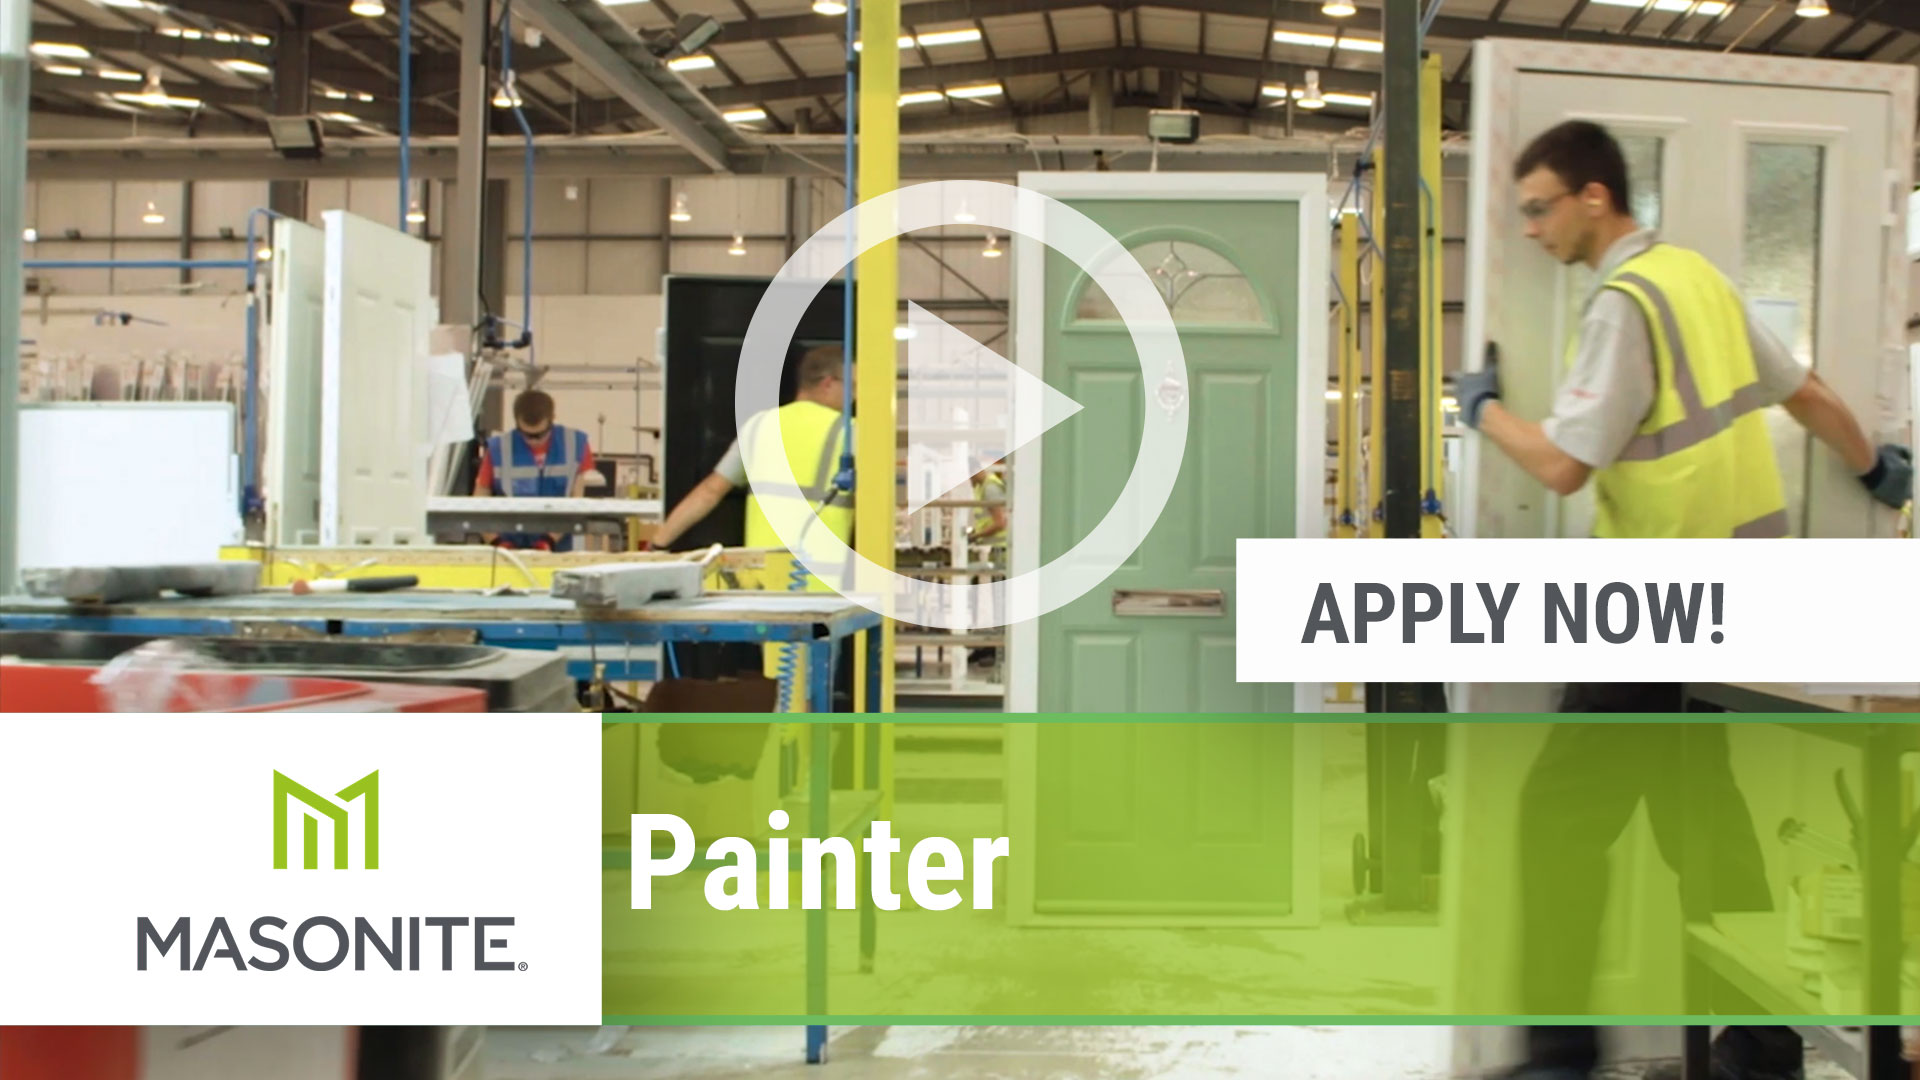 Watch our careers video for available job opening Painter in Stanley, VA, USA